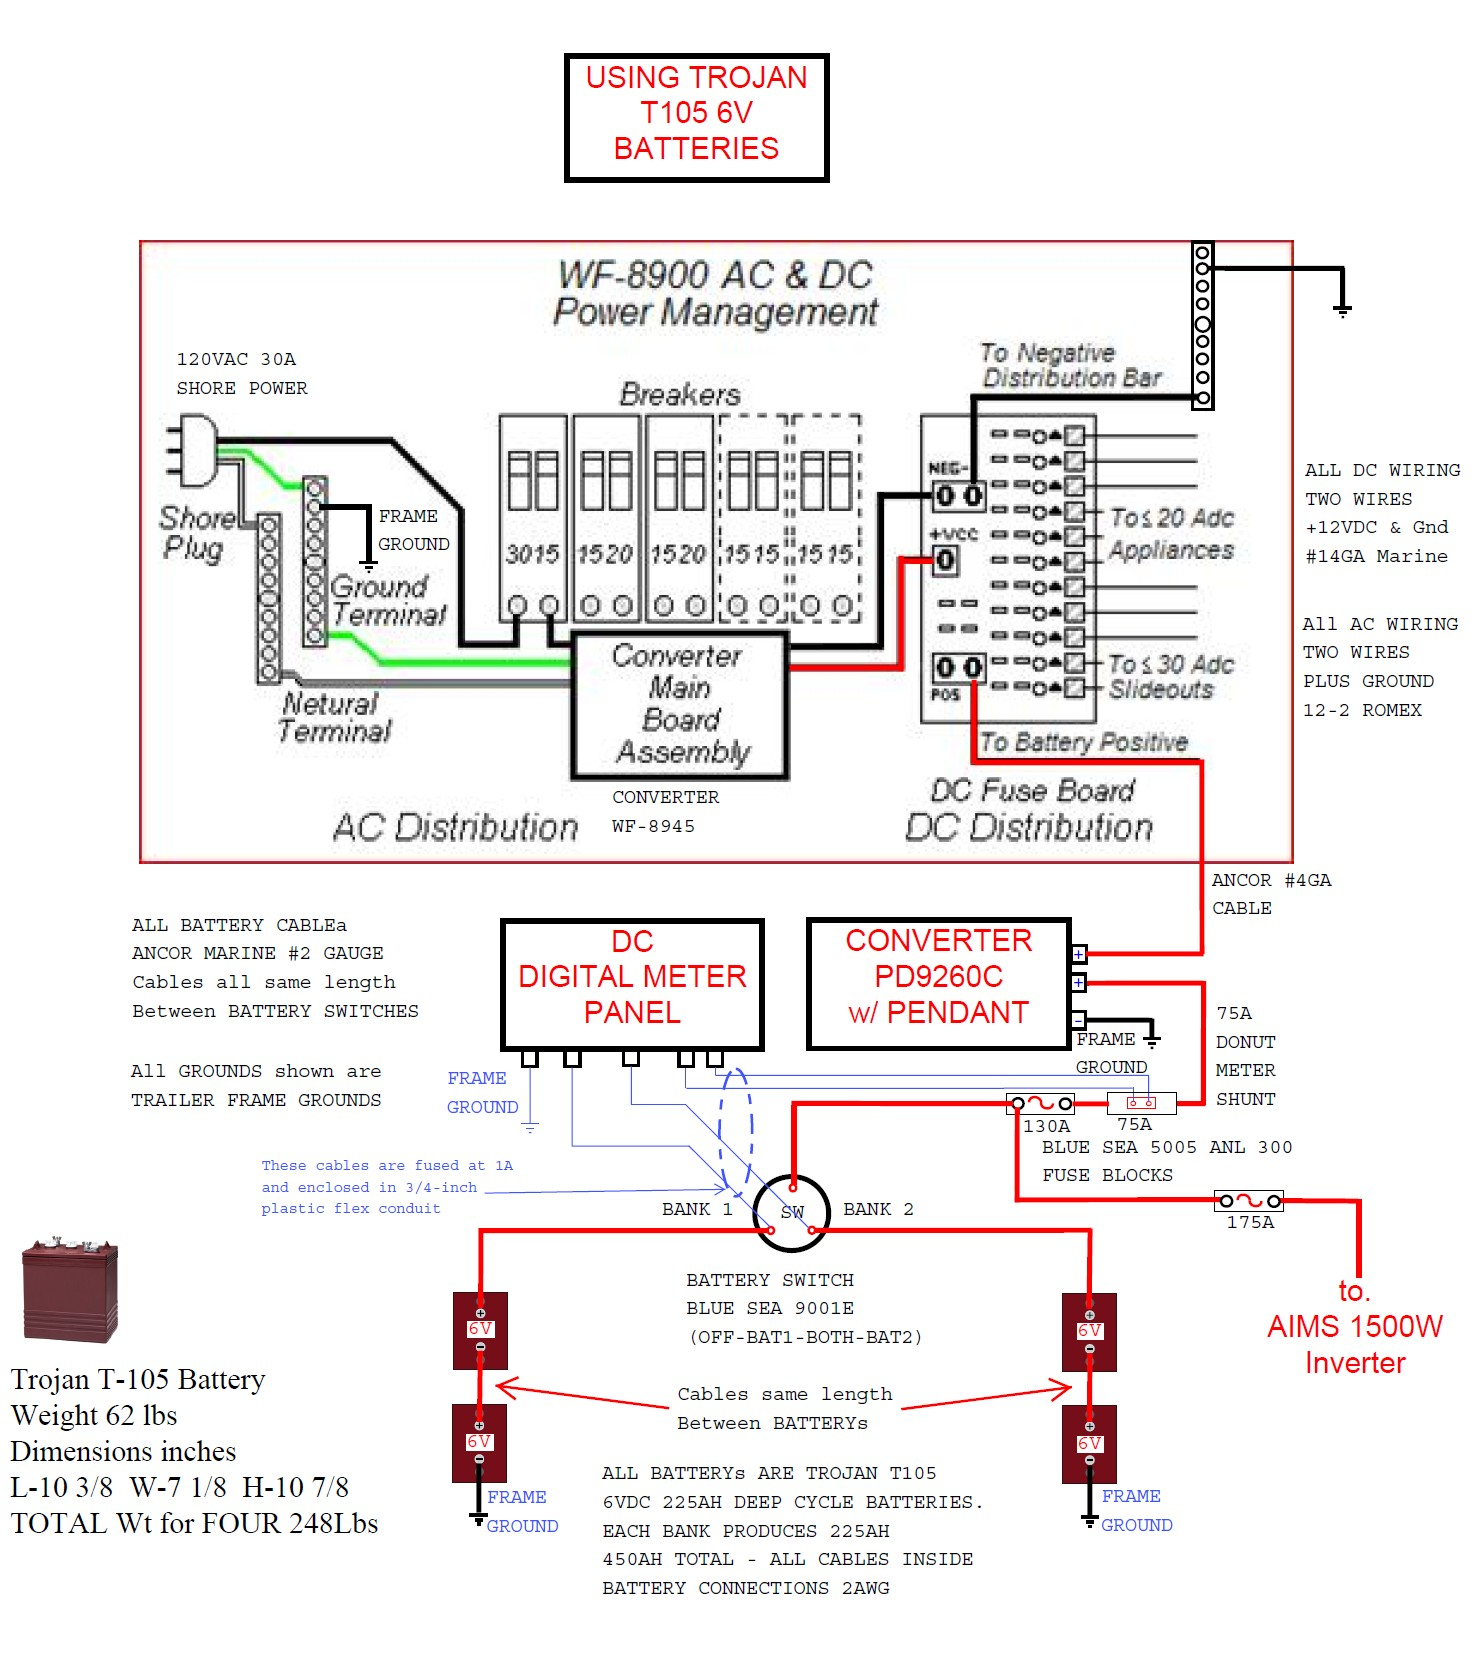 Wiring Diagram For Inverter New Rv Converter 12 5 | Hastalavista - Rv Converter Wiring Diagram